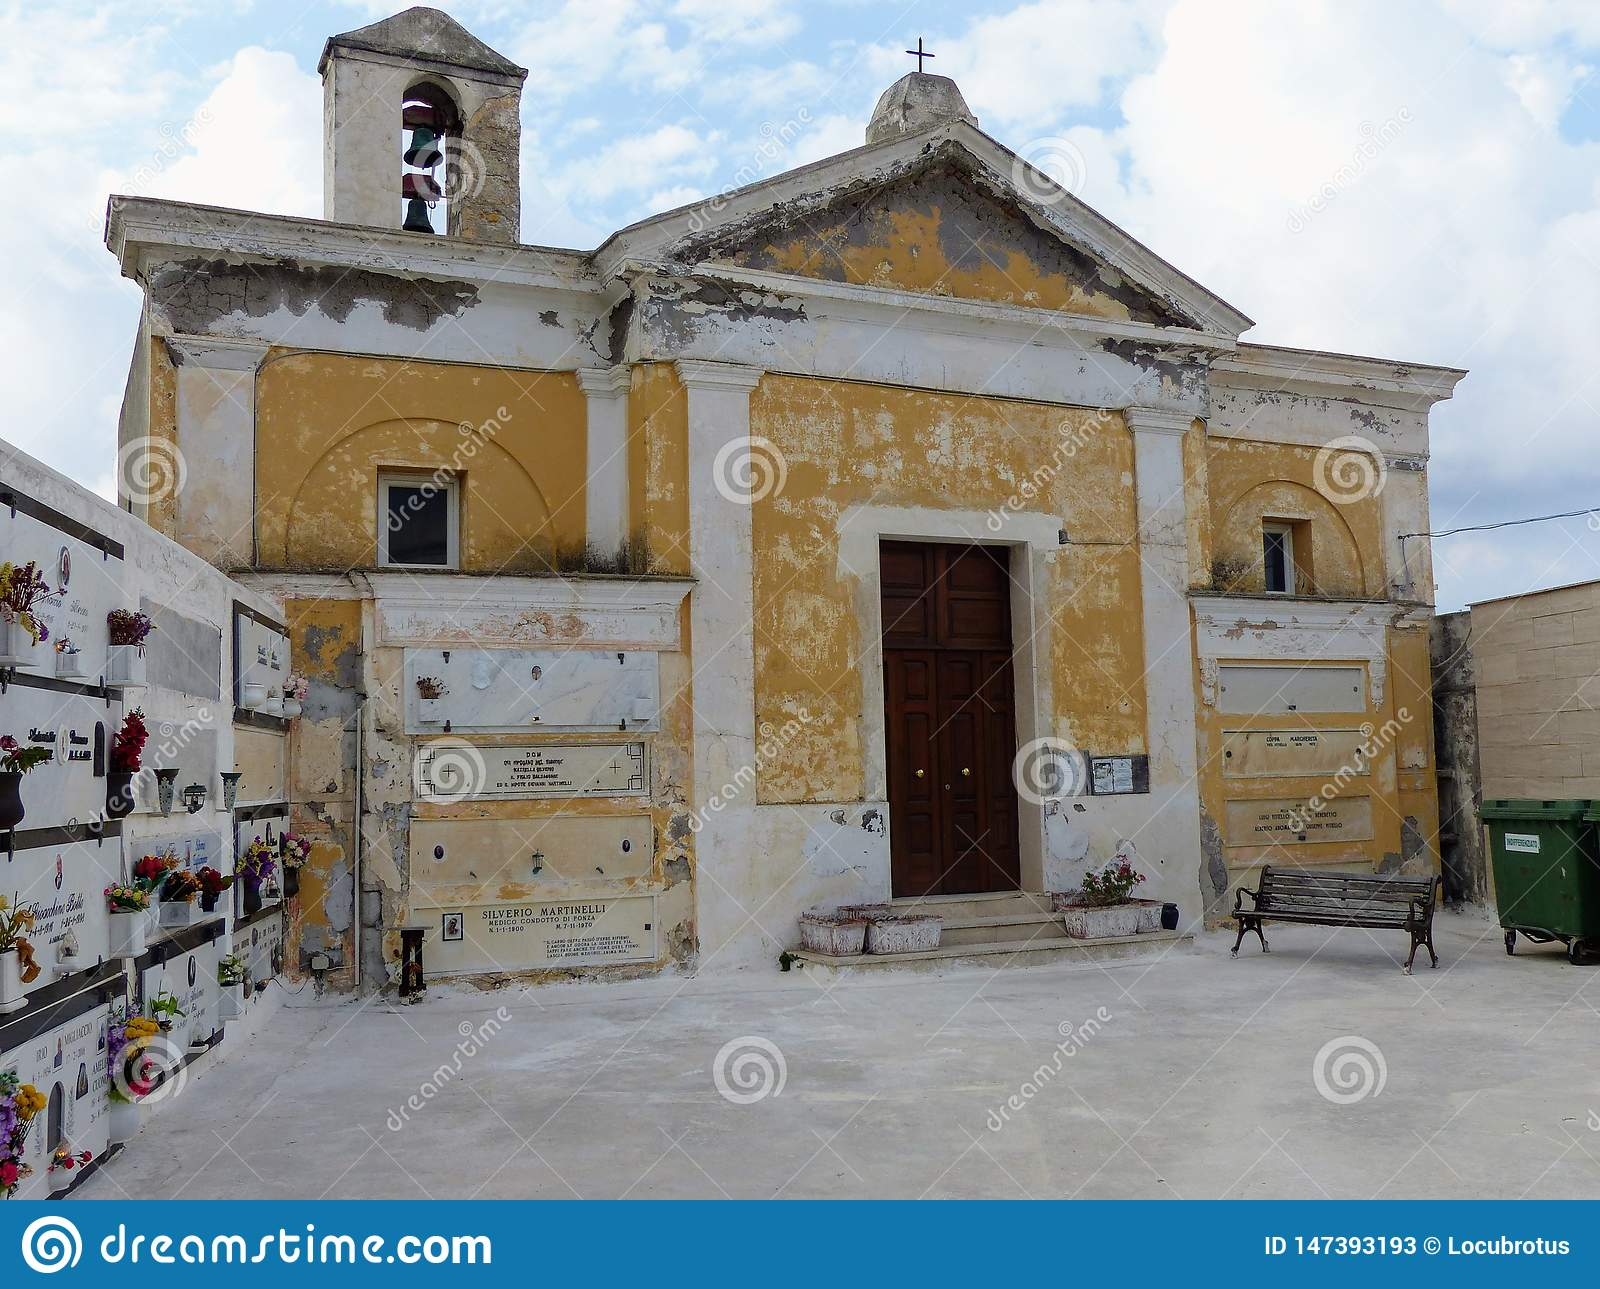 Old church of the cemetery of the island of Ponza in Italy.